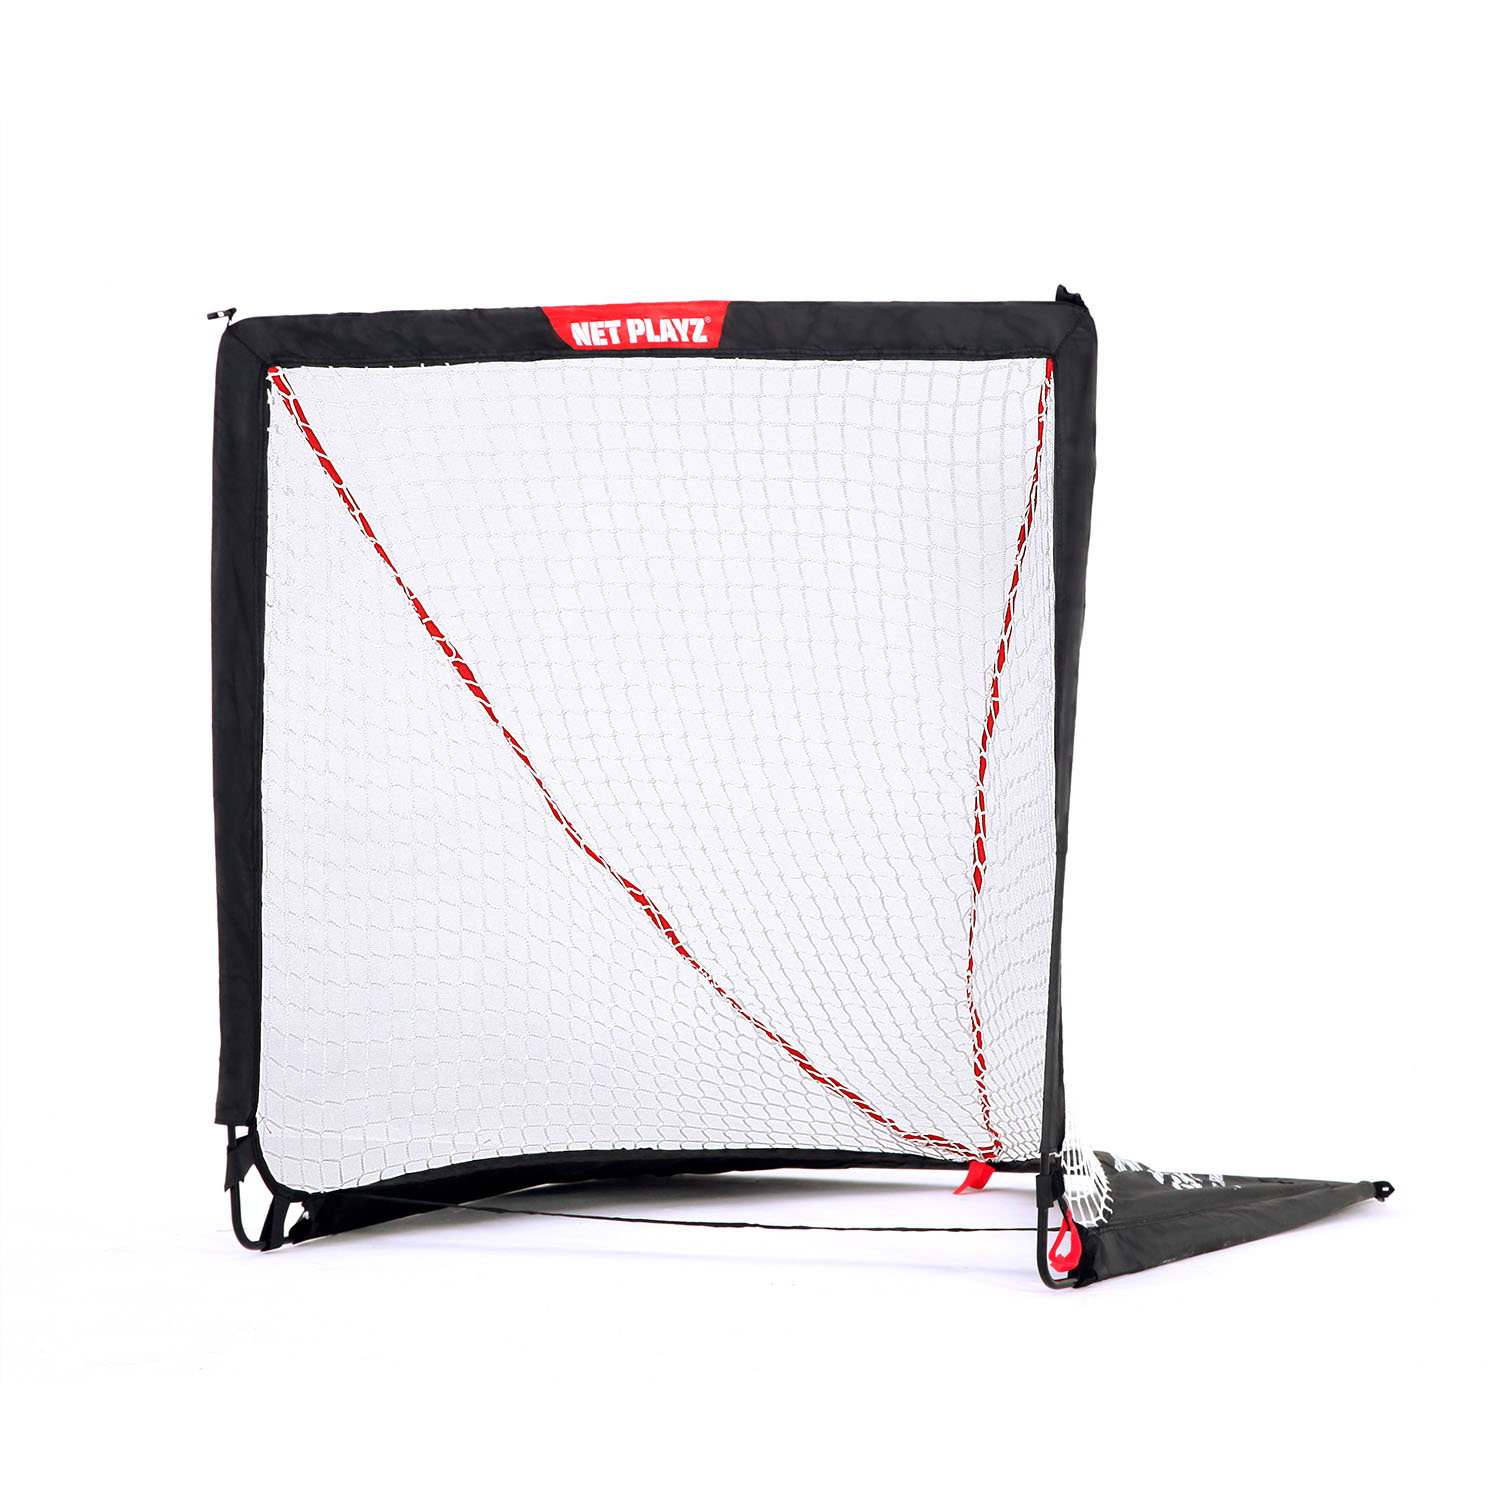 Net Playz Portable Easy Fold-Up Lacrosse Goal, 4ft x 4ft or 6ft x 6ft by TRI GREAT USA CORP.